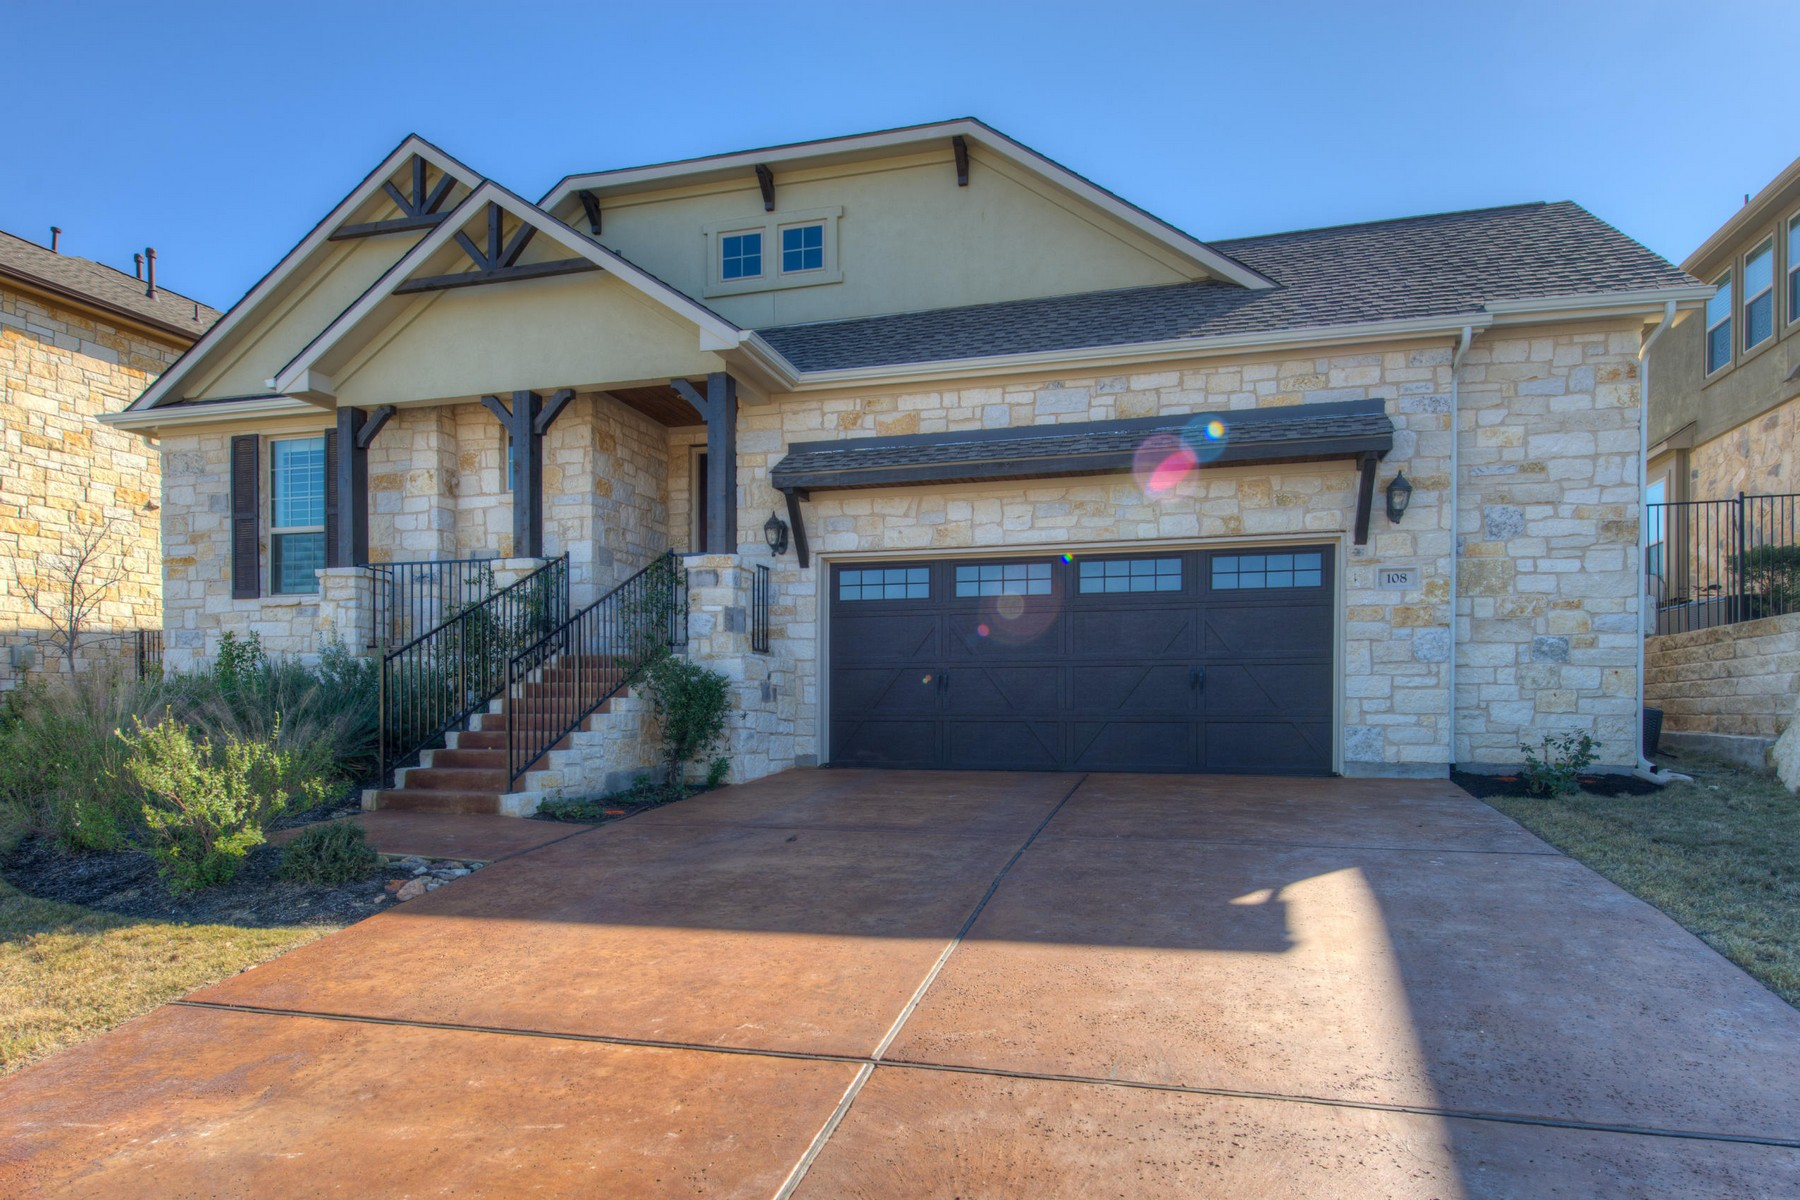 Single Family Home for Sale at Newly Built Rough Hollow Home 108 Wester Ross Ln Lakeway, Texas, 78738 United States